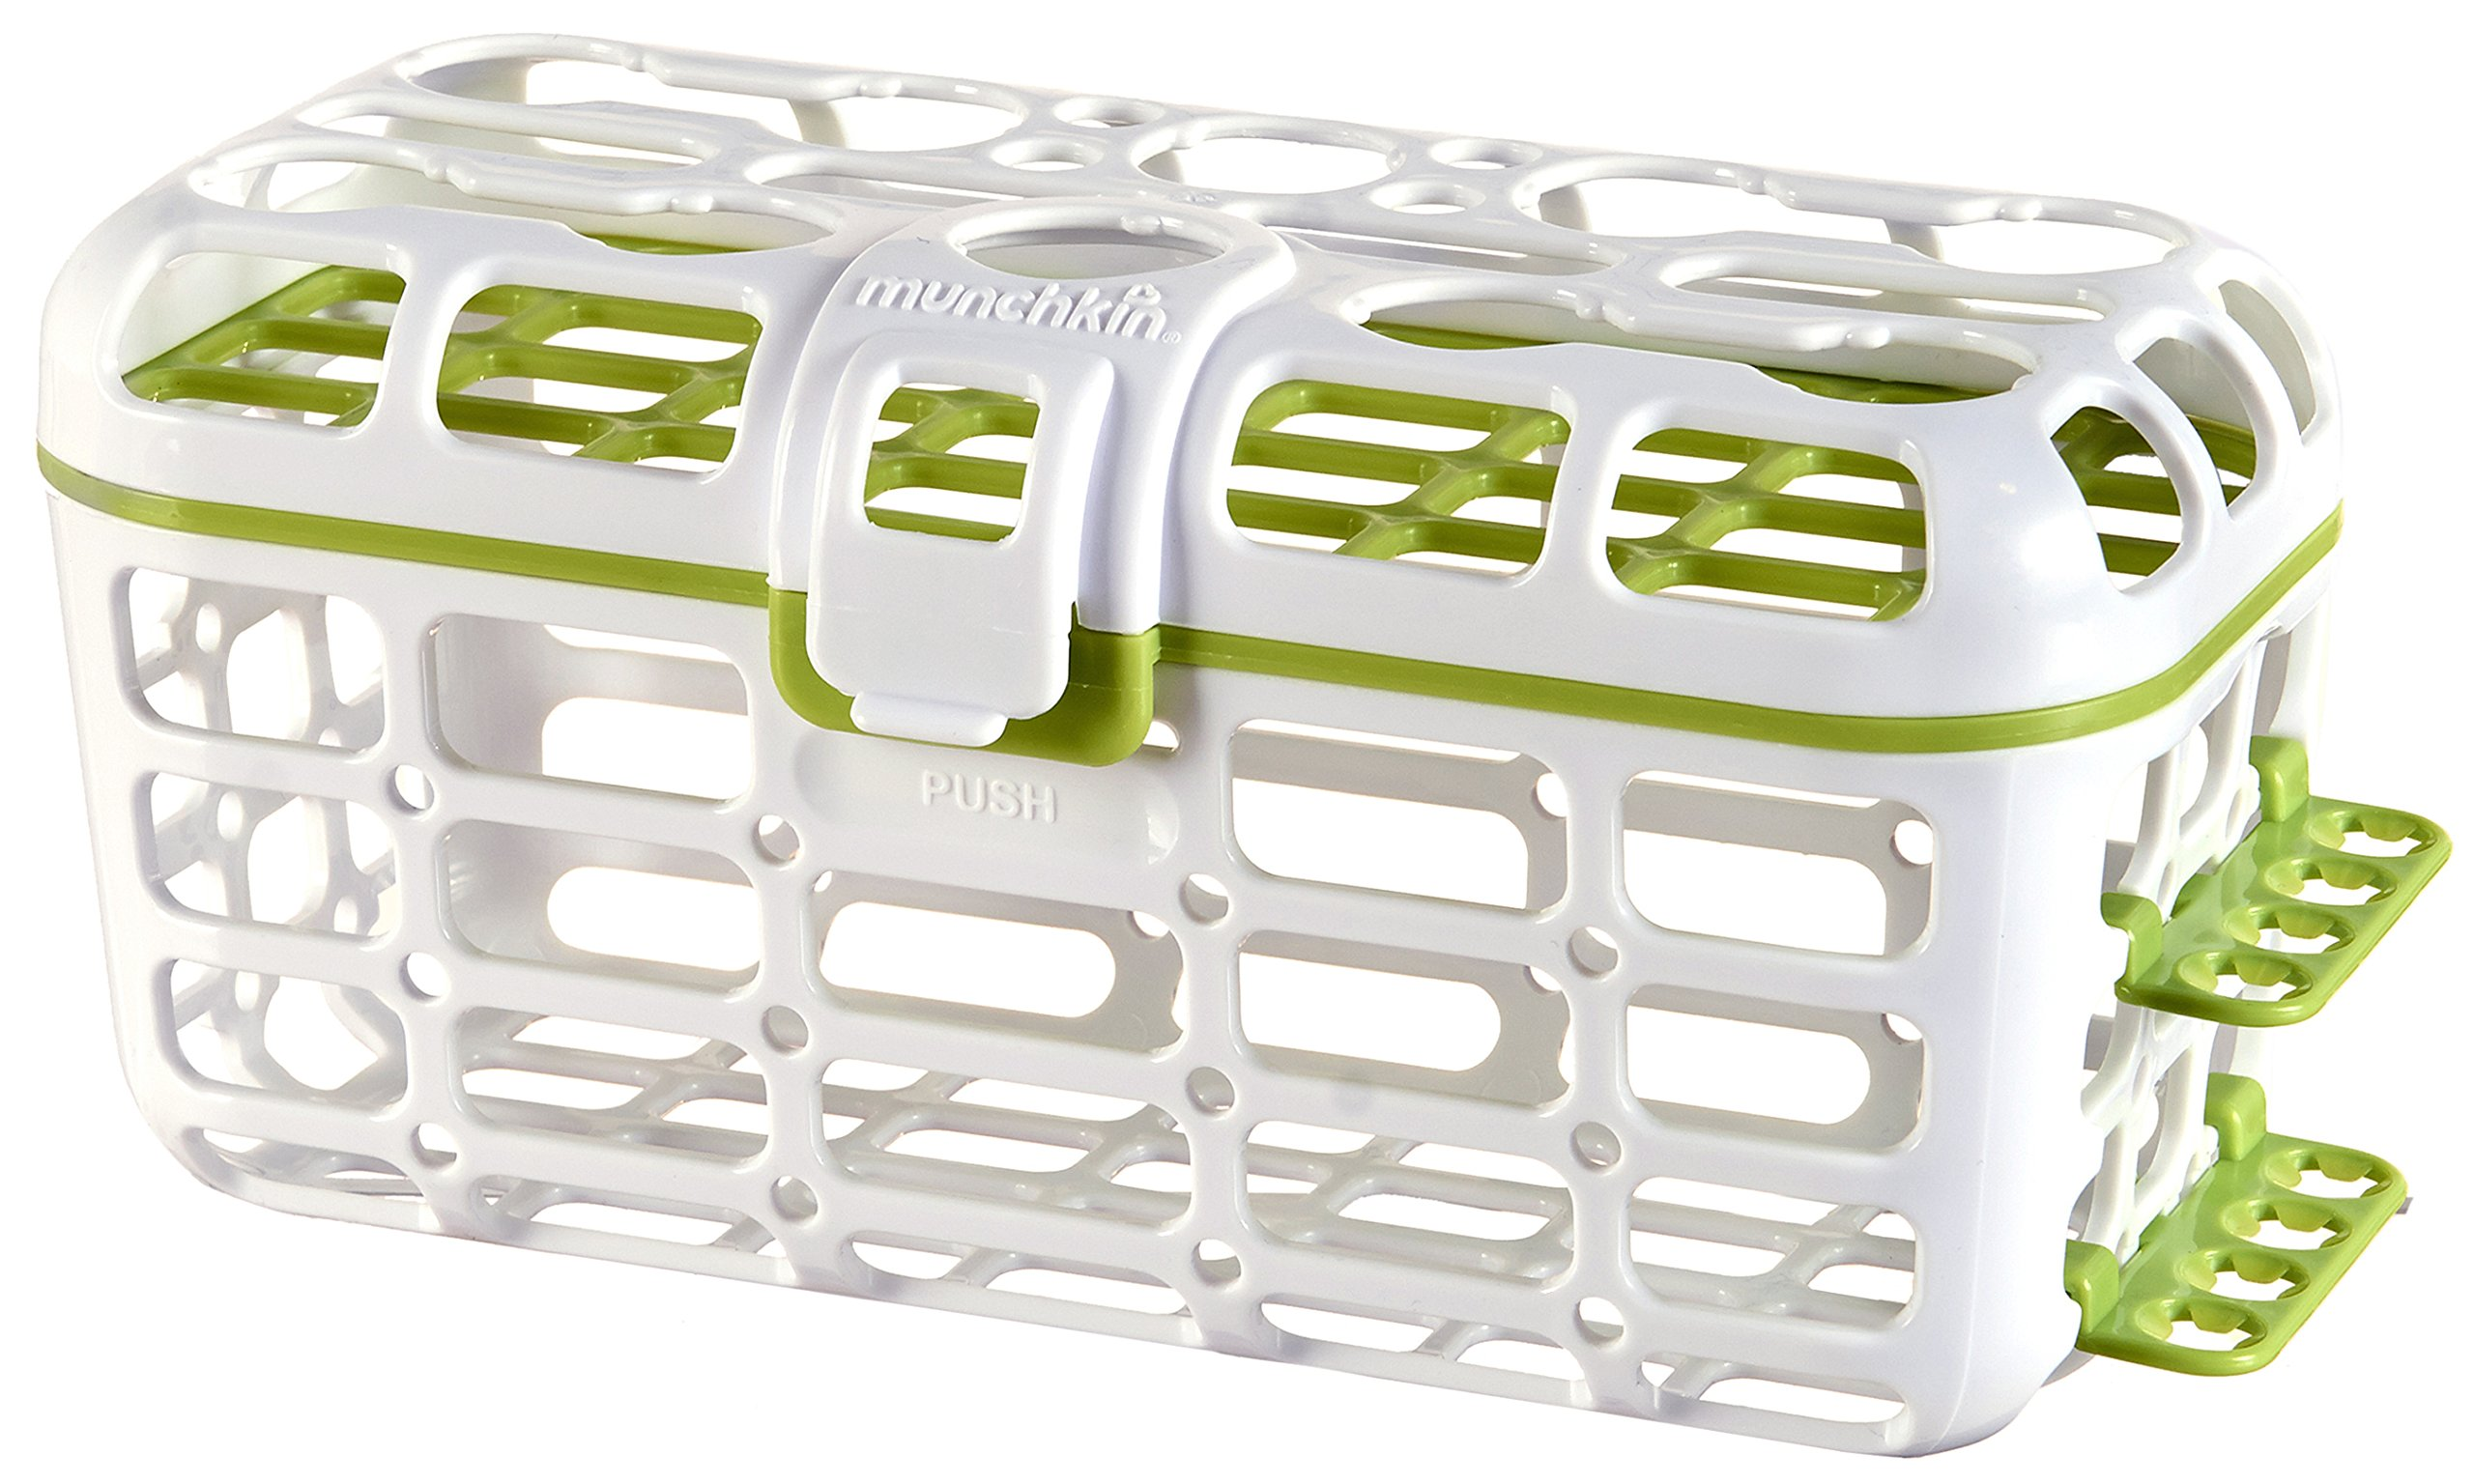 Munchkin Deluxe Dishwasher Basket, Colors May Vary by Munchkin